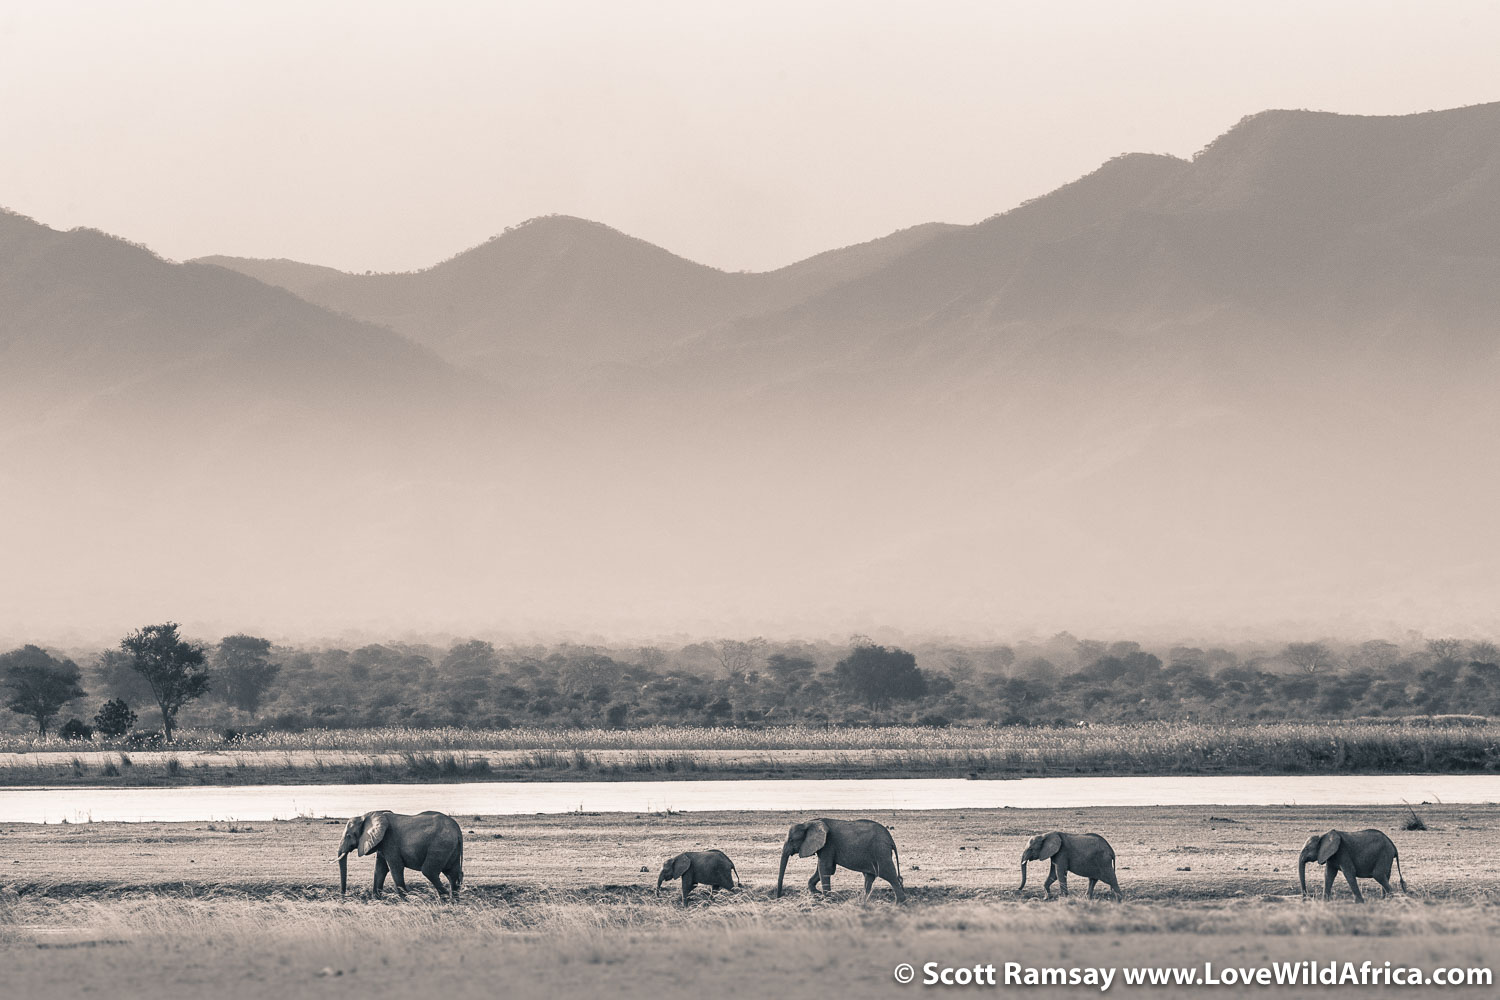 Elephants on Zambezi River in Mana Pools